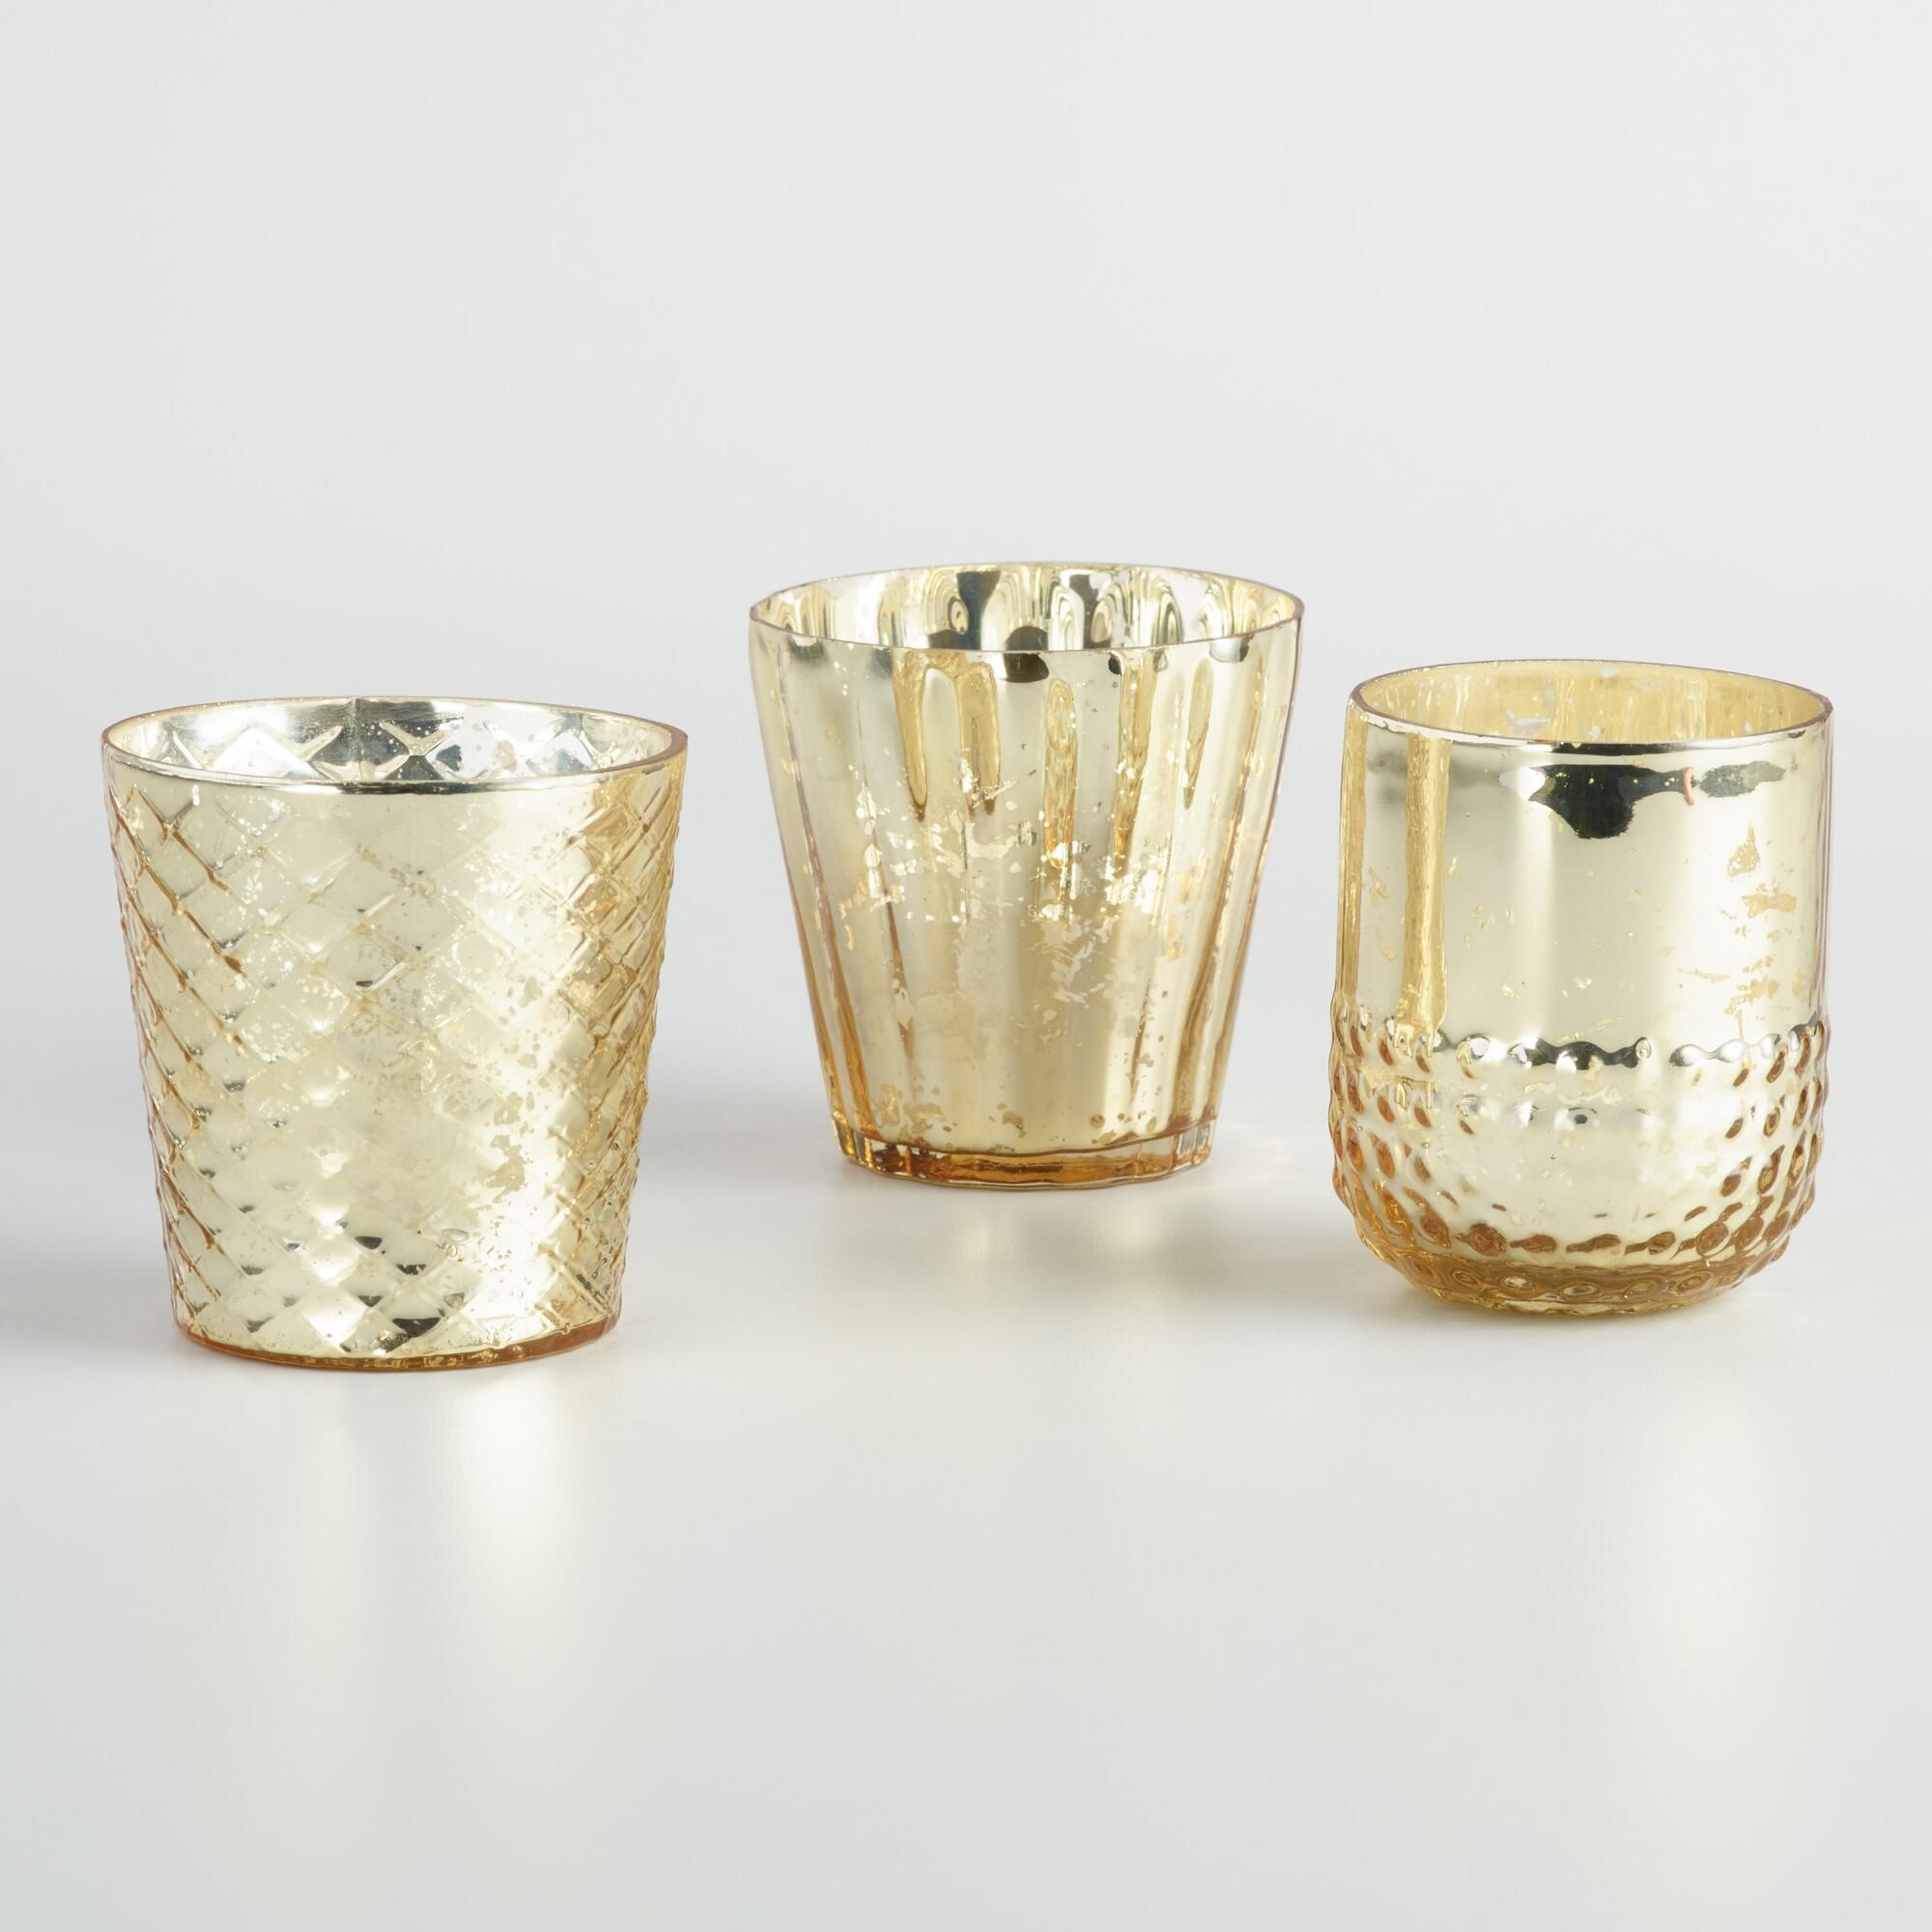 Create a sophisticated display of candlelight with our set of votive holders. Handcrafted of mercury-finished glass by artisans in India, each features a unique textured pattern.